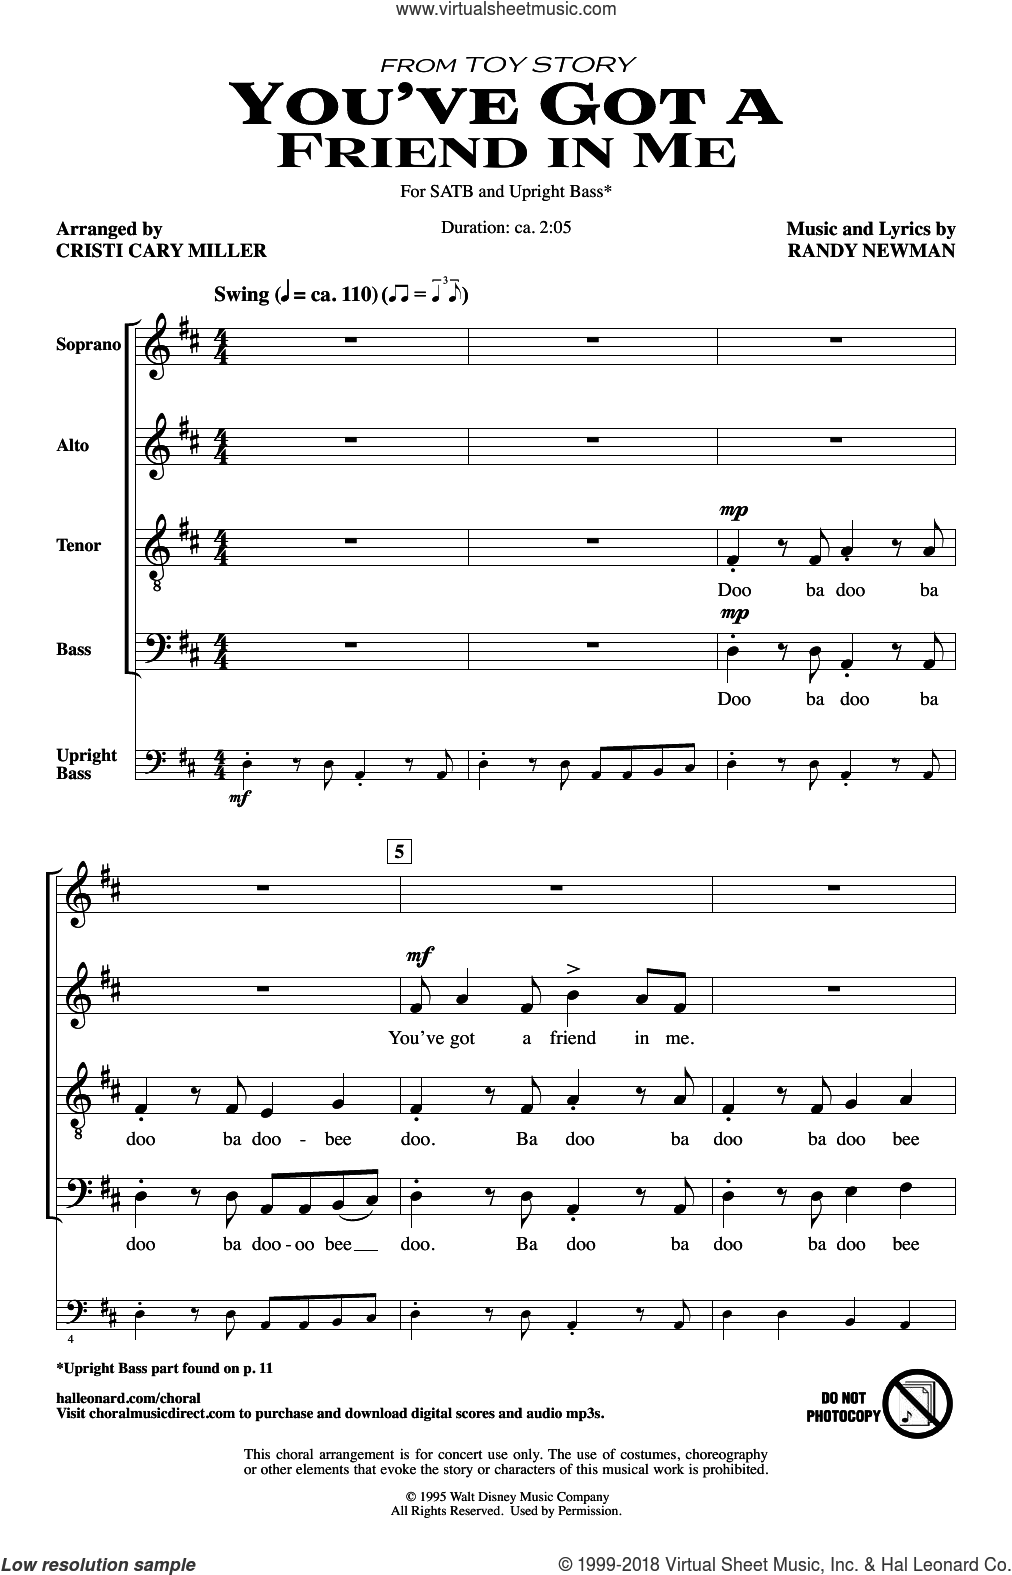 You've Got A Friend In Me (from Toy Story) (arr. Cristi Cary Miller) sheet music for choir (SATB: soprano, alto, tenor, bass) by Randy Newman, Cristi Cary Miller and Lyle Lovett, intermediate skill level